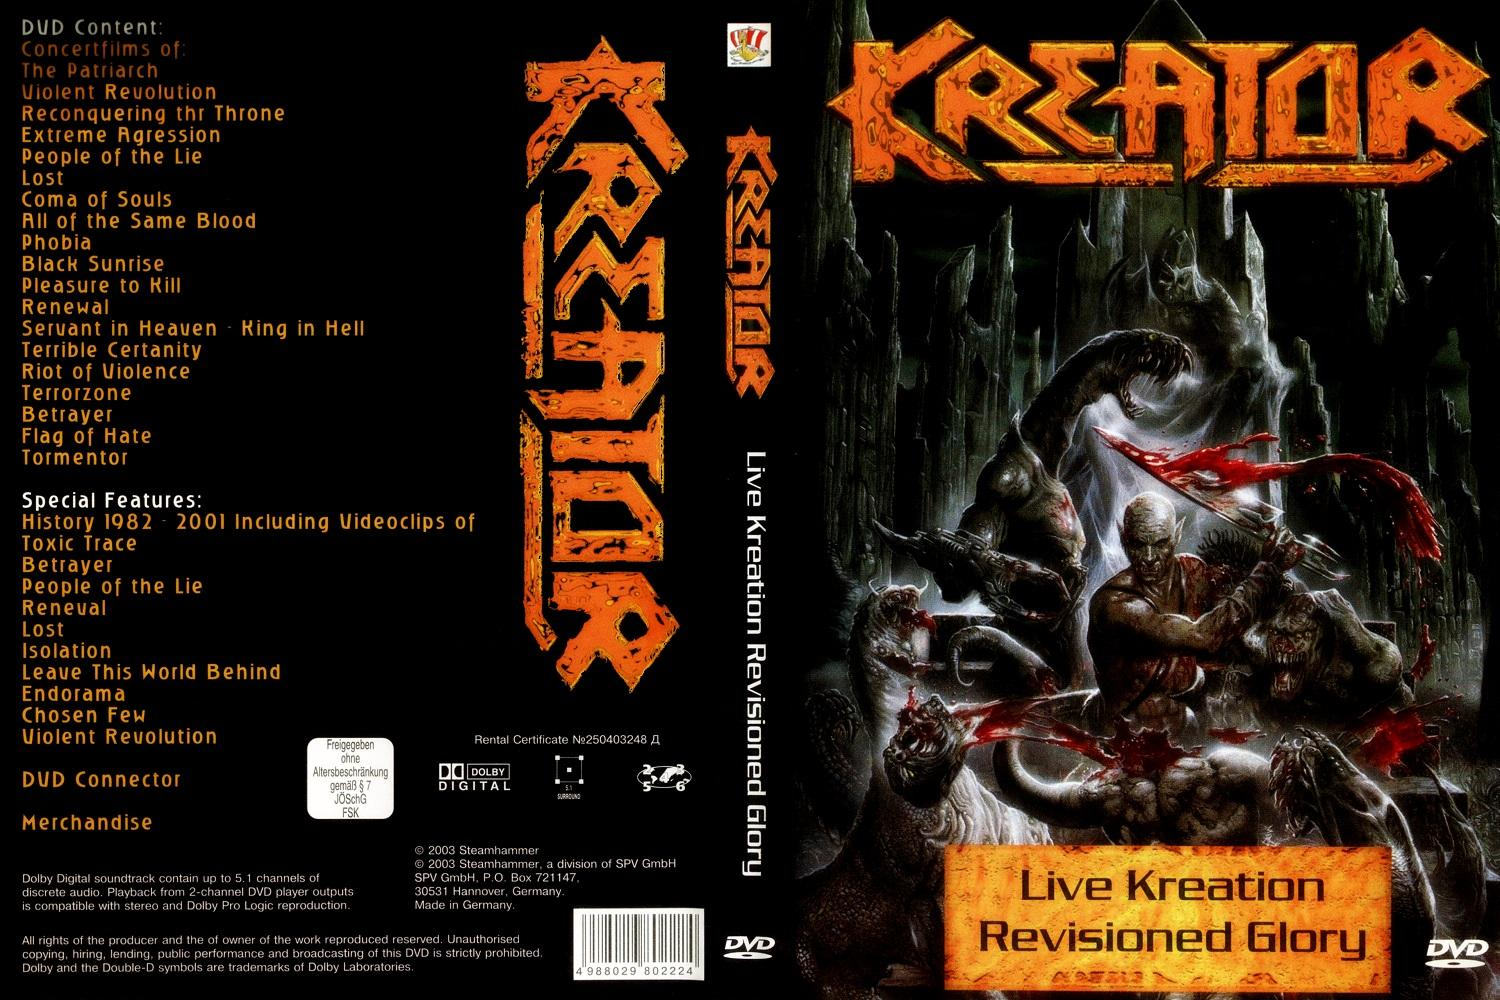 live kreation dvd